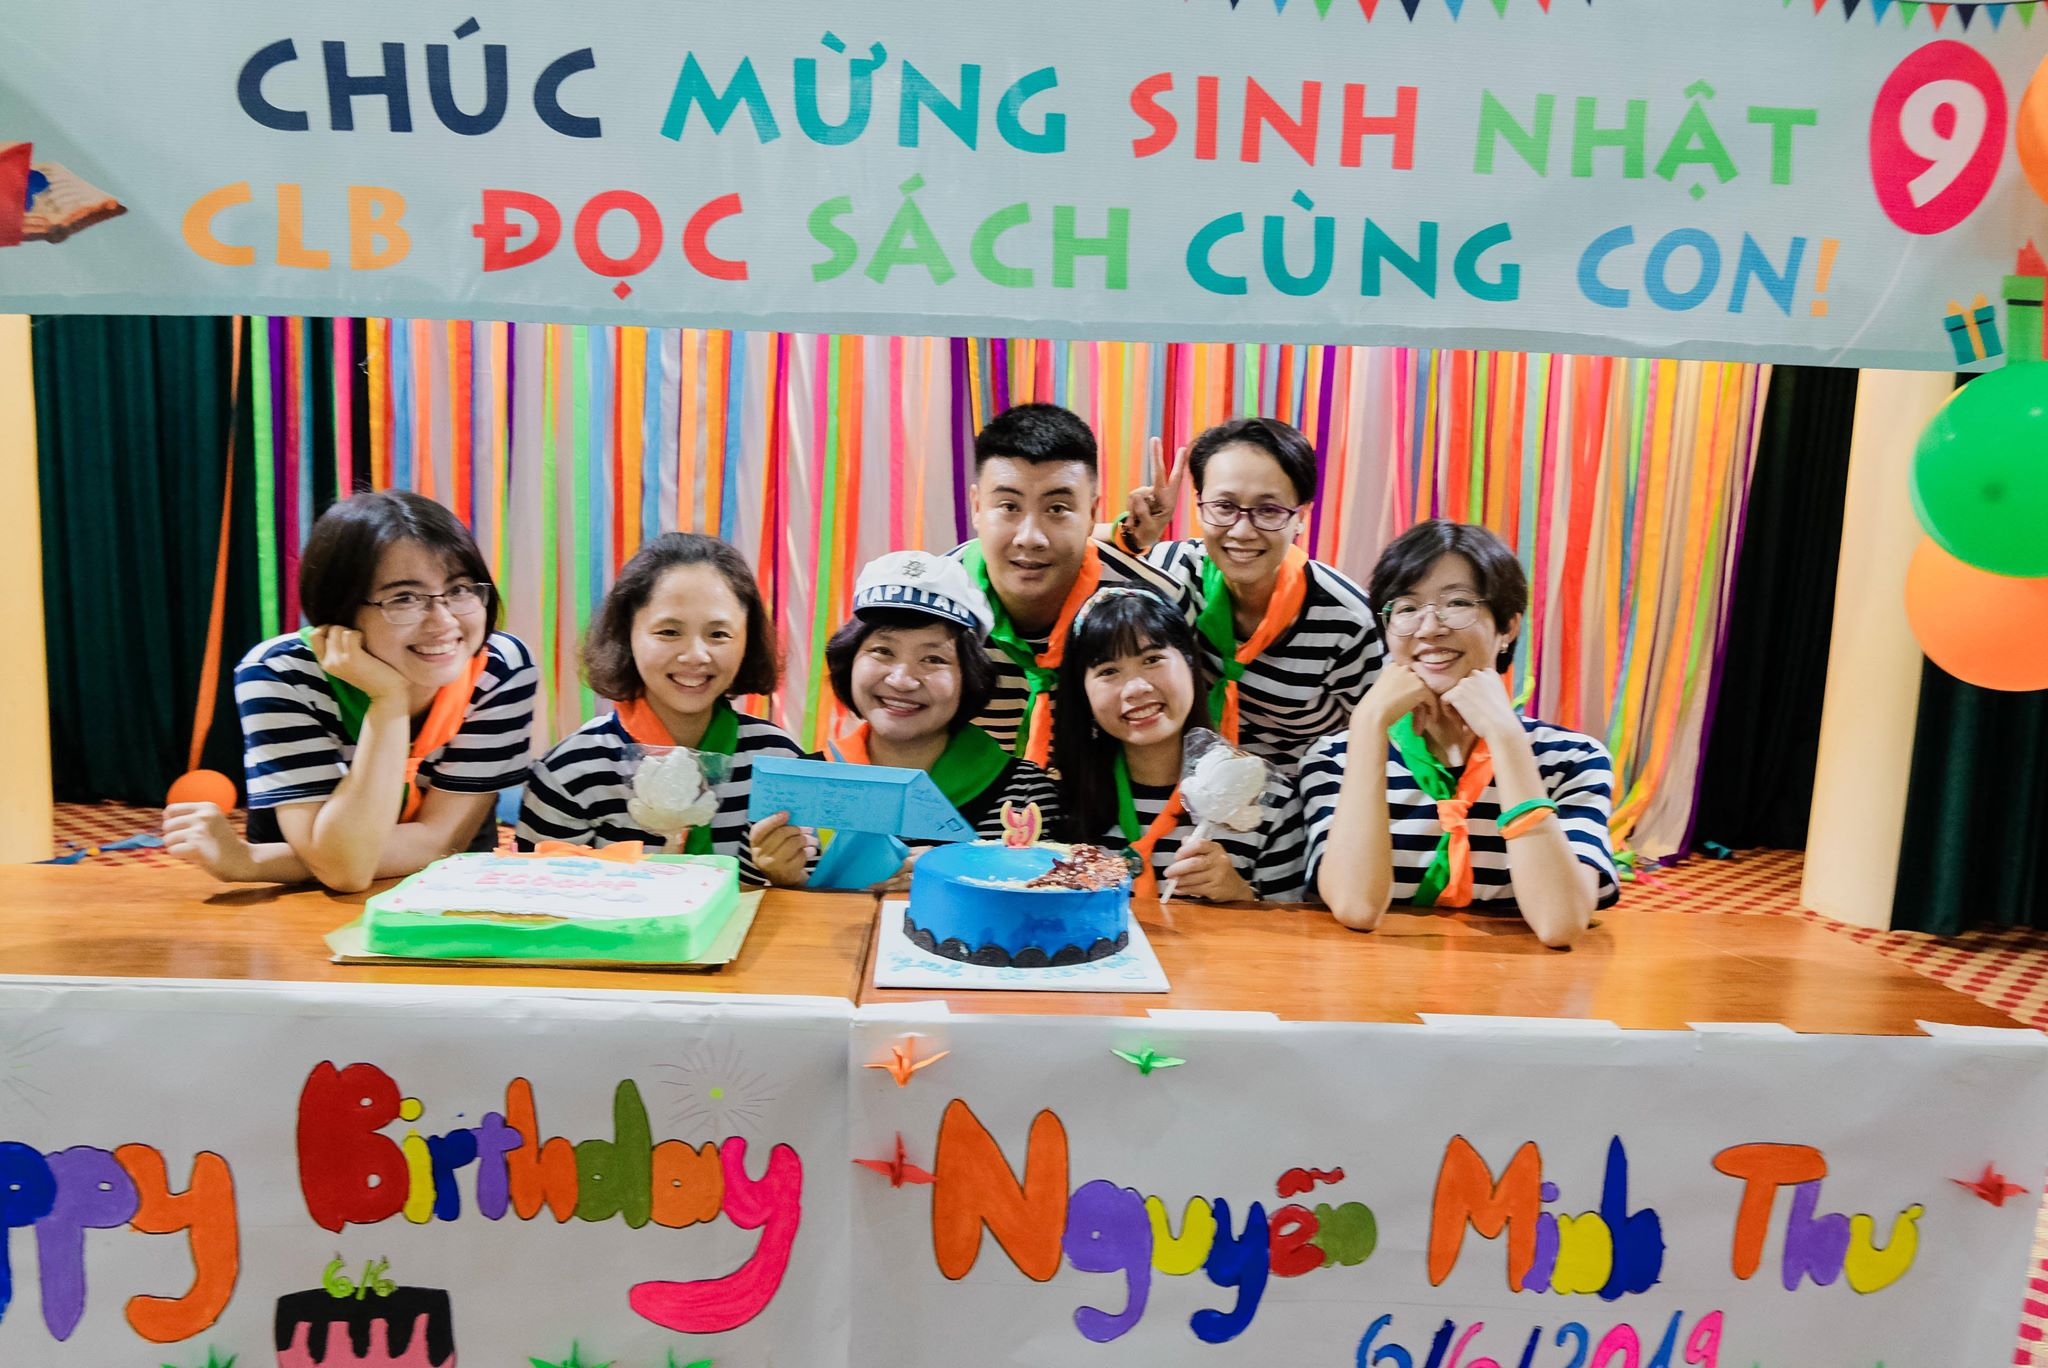 ecocamp 2019 - 1- mung sinh nhat clb doc sach cung con 9 tuoi (14)